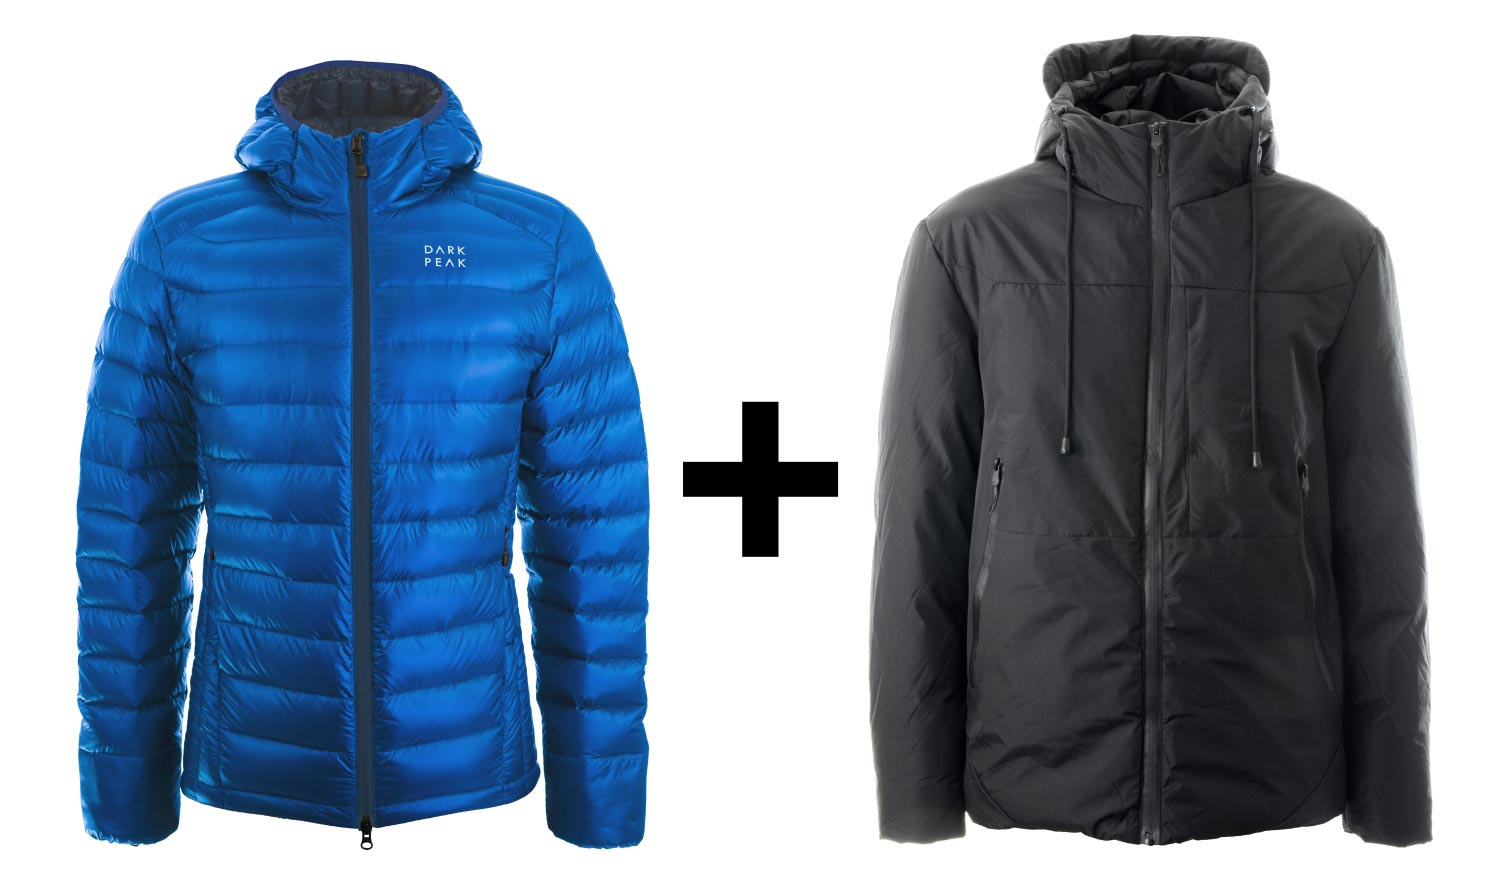 A Nessh Down Jacket with an equivalent jacket for a homeless person